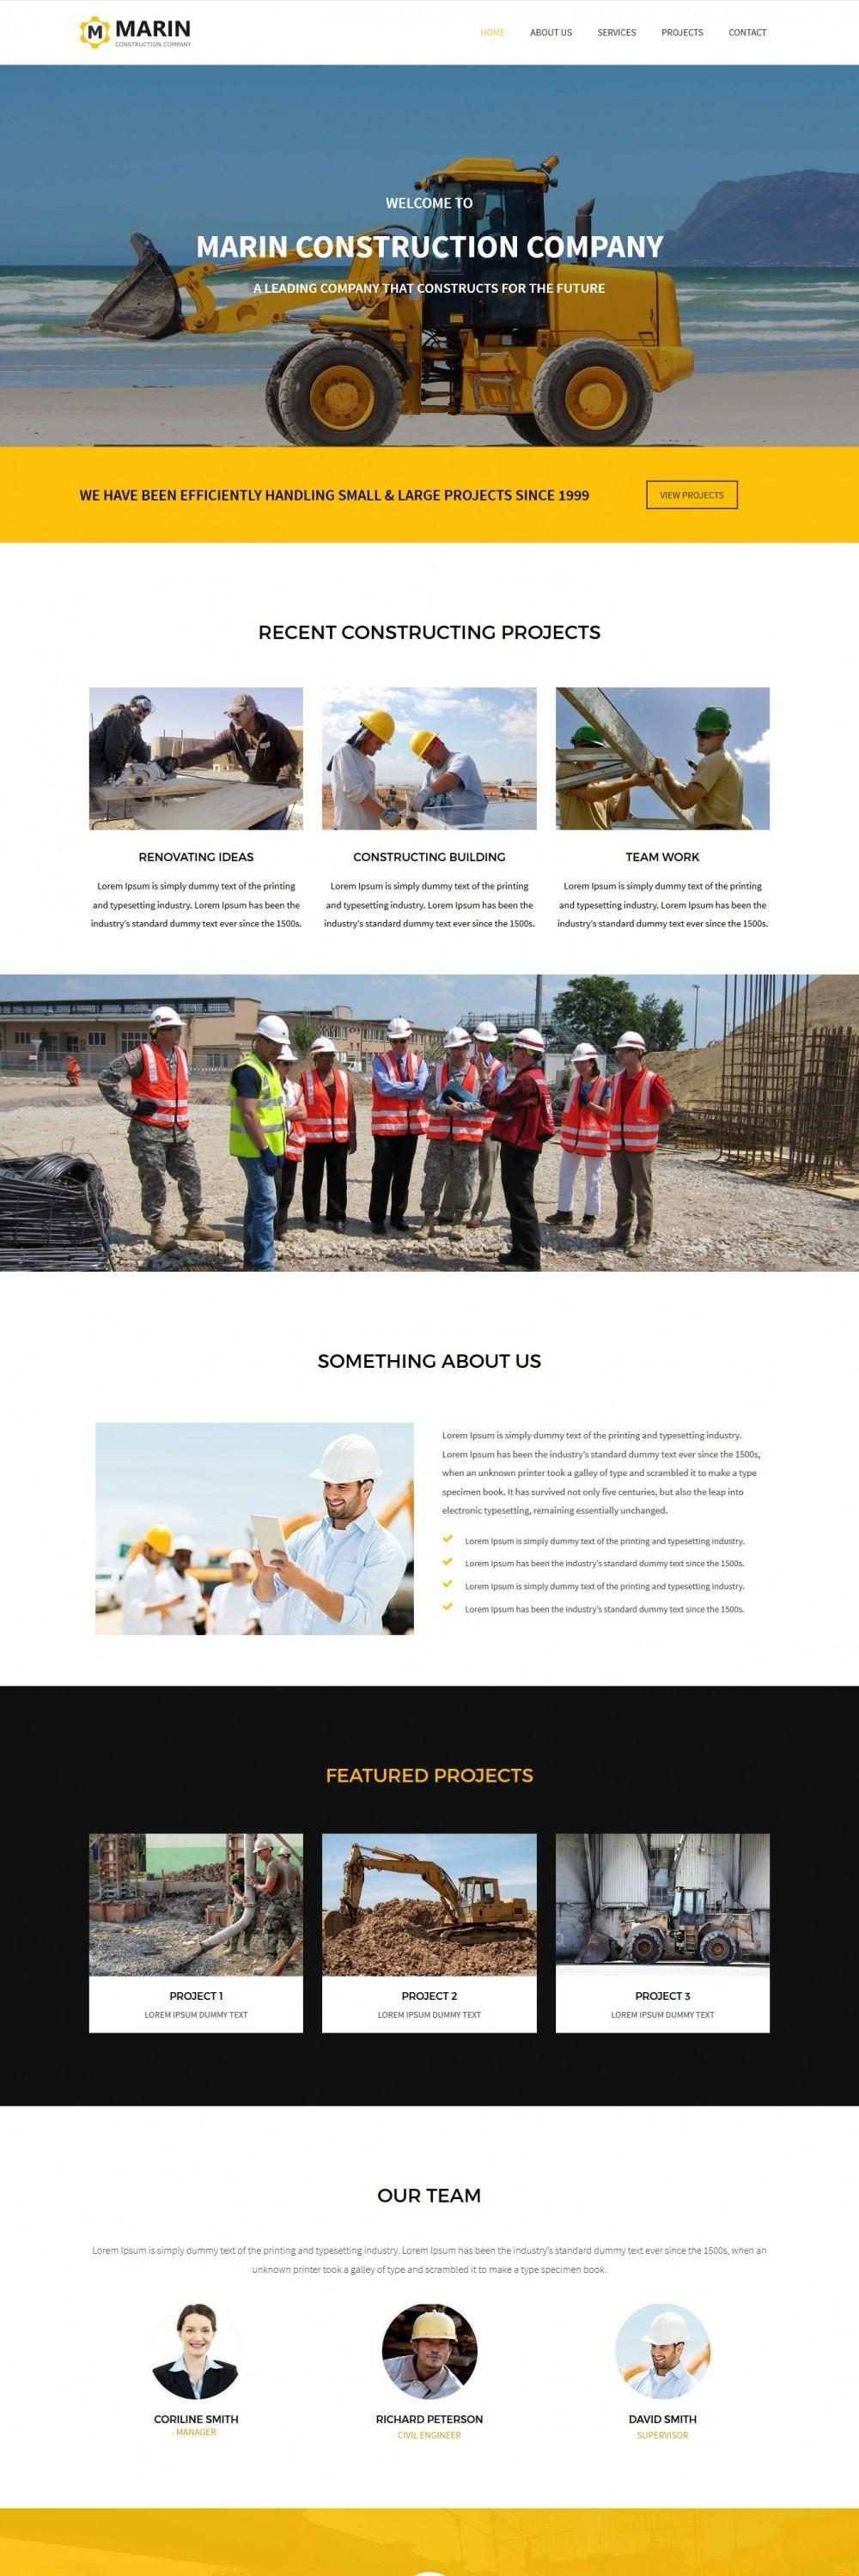 marin construction company joomla template